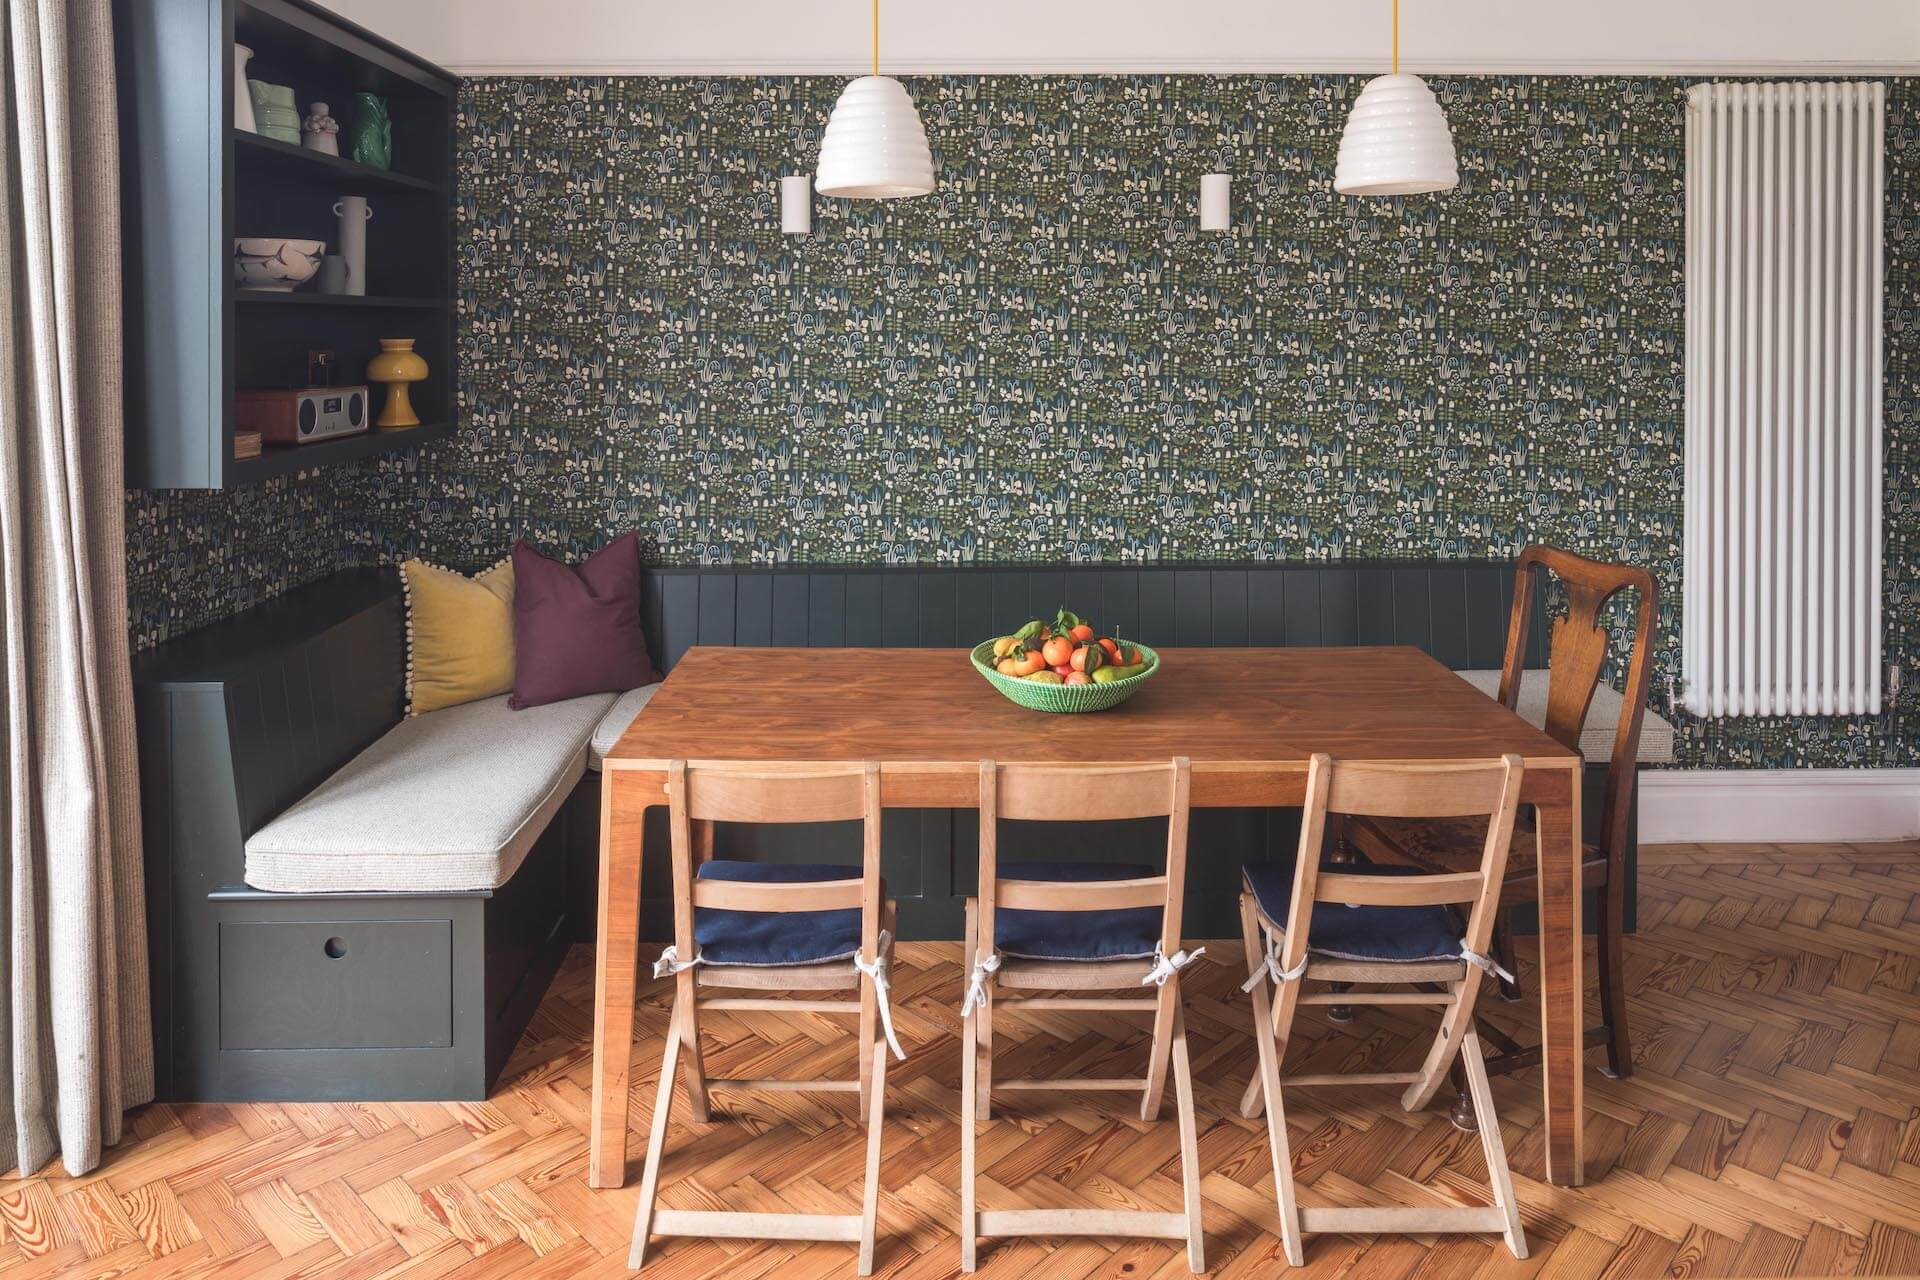 The Cardiff Green Shaker Kitchen wth dining room bench seating